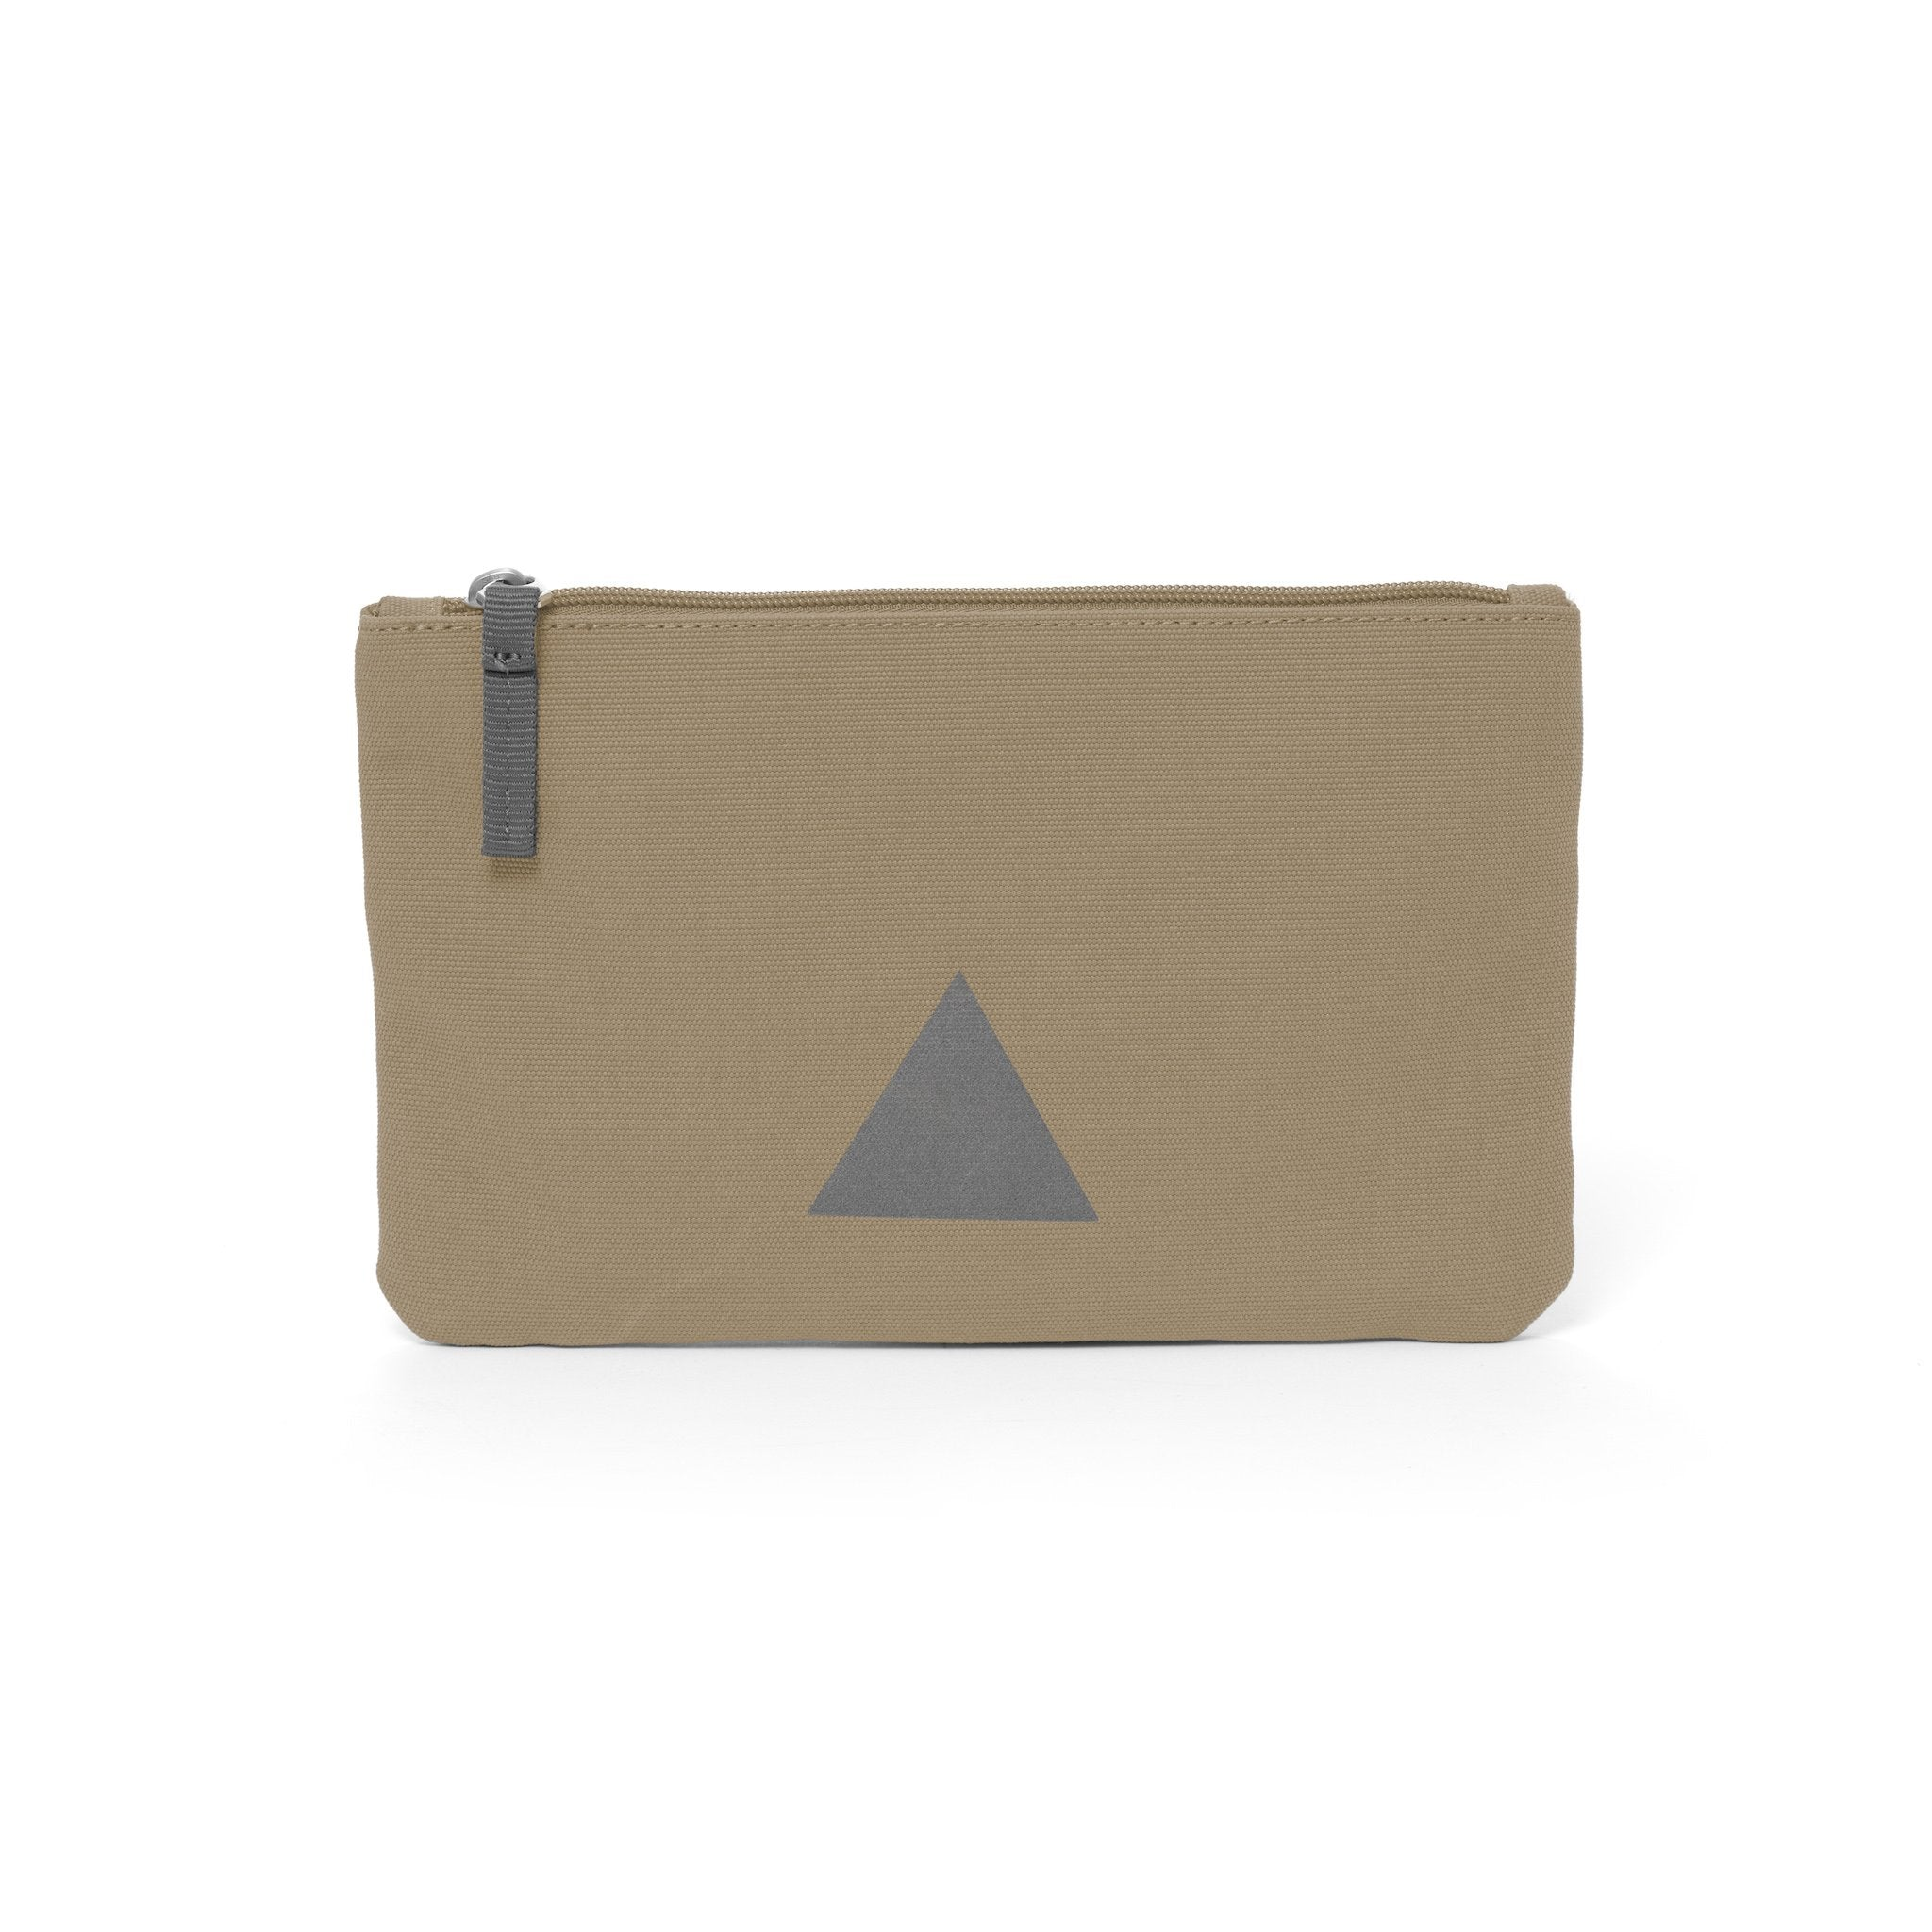 Khaki canvas travel wallet with zip opening and triangle logo.